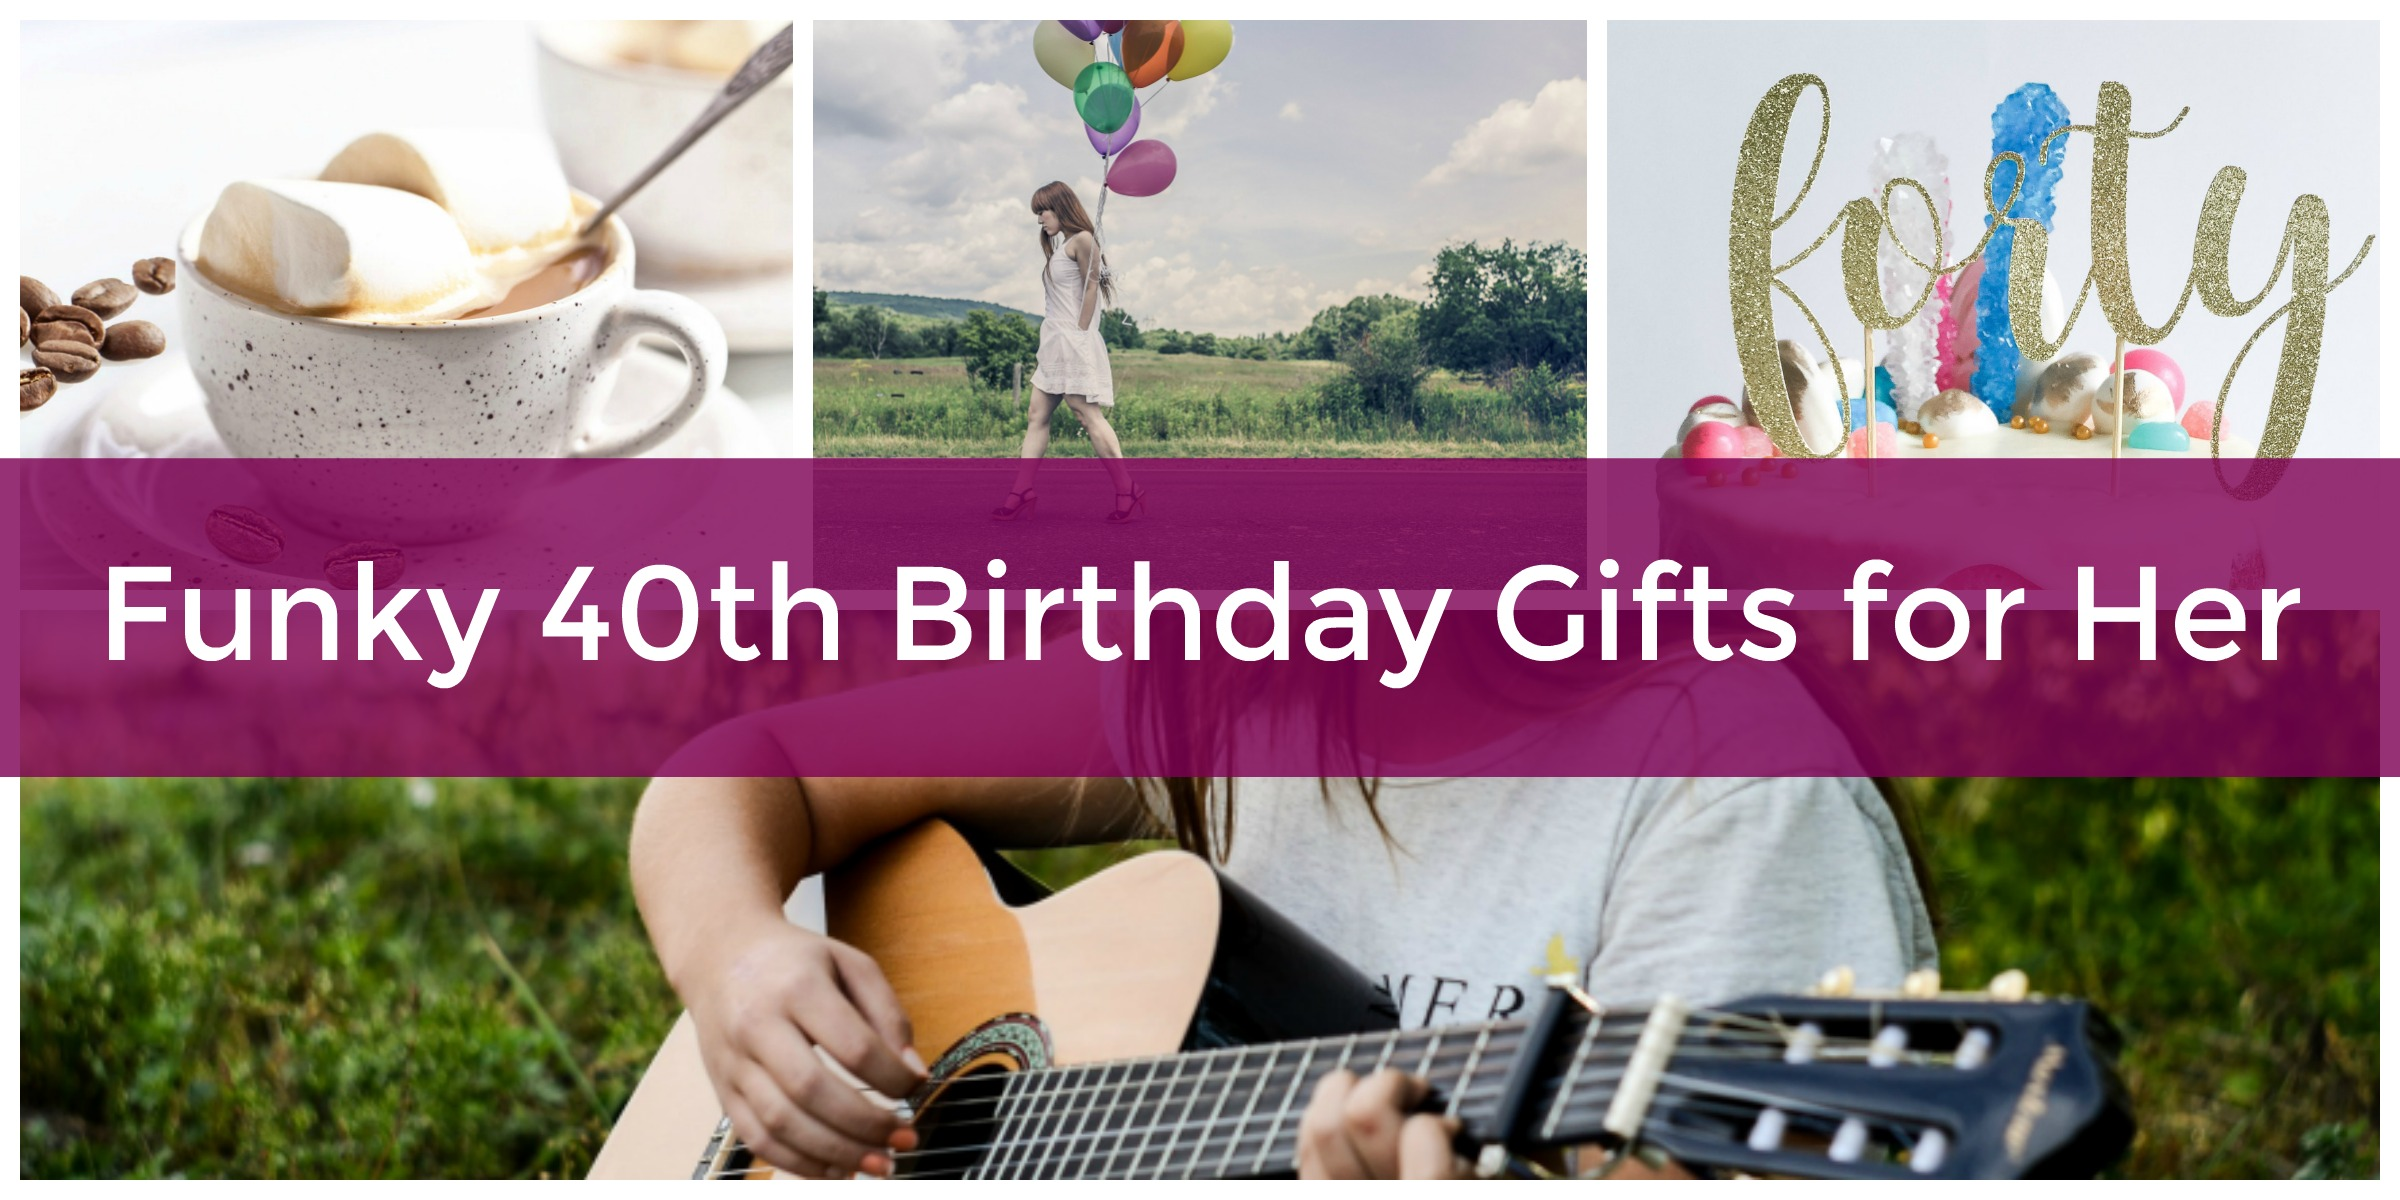 Gift ideas for female 40th birthday